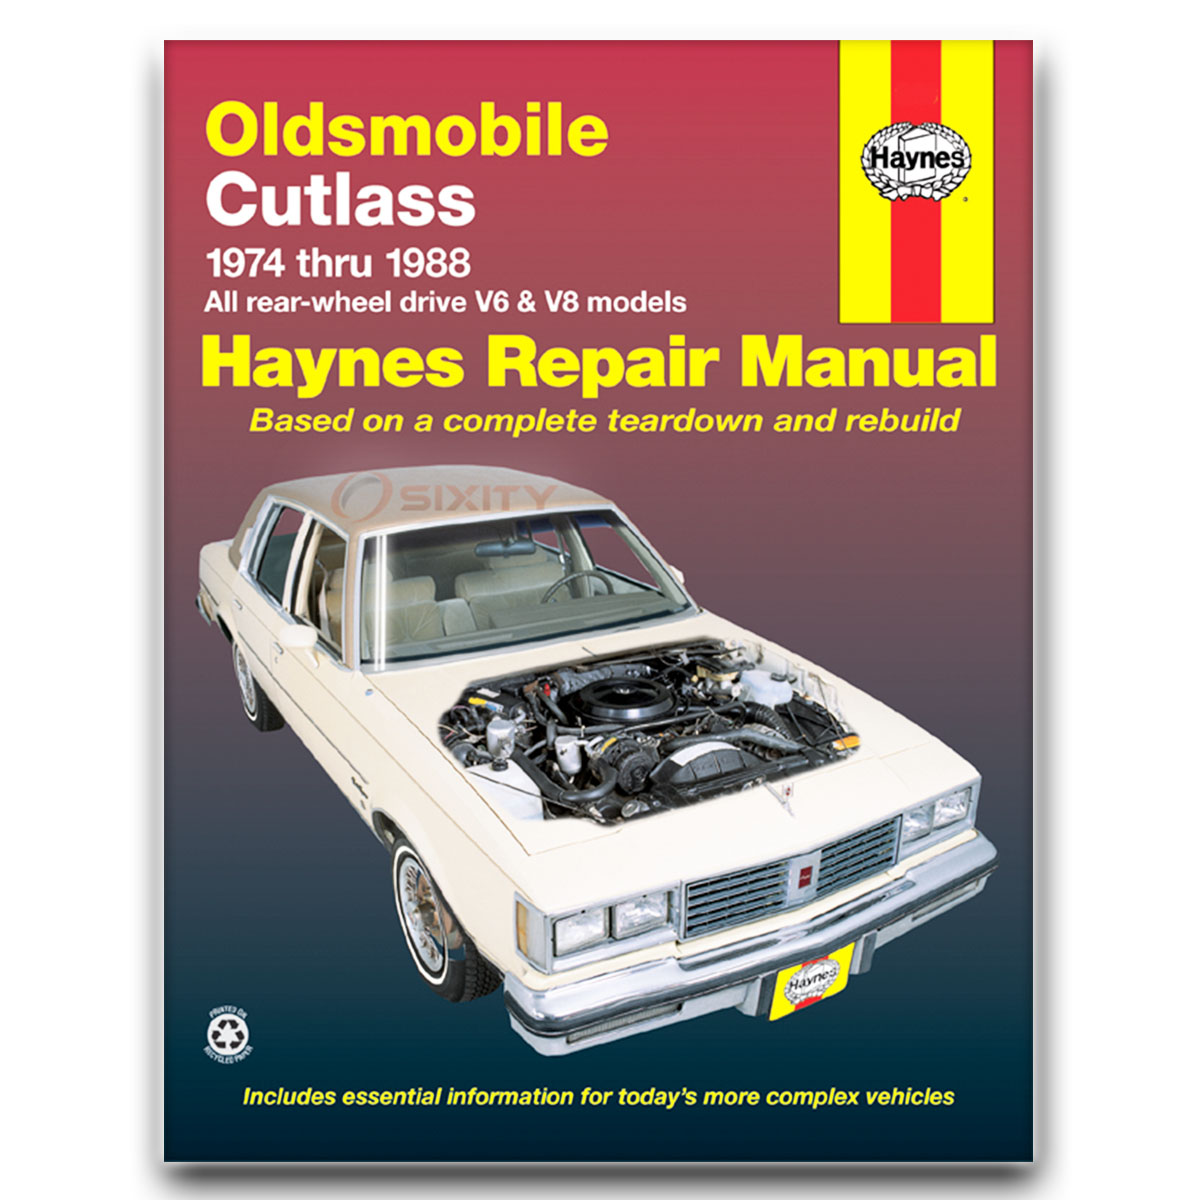 Haynes Repair Manual for Oldsmobile Cutlass Supreme Classic Brougham Shop fo